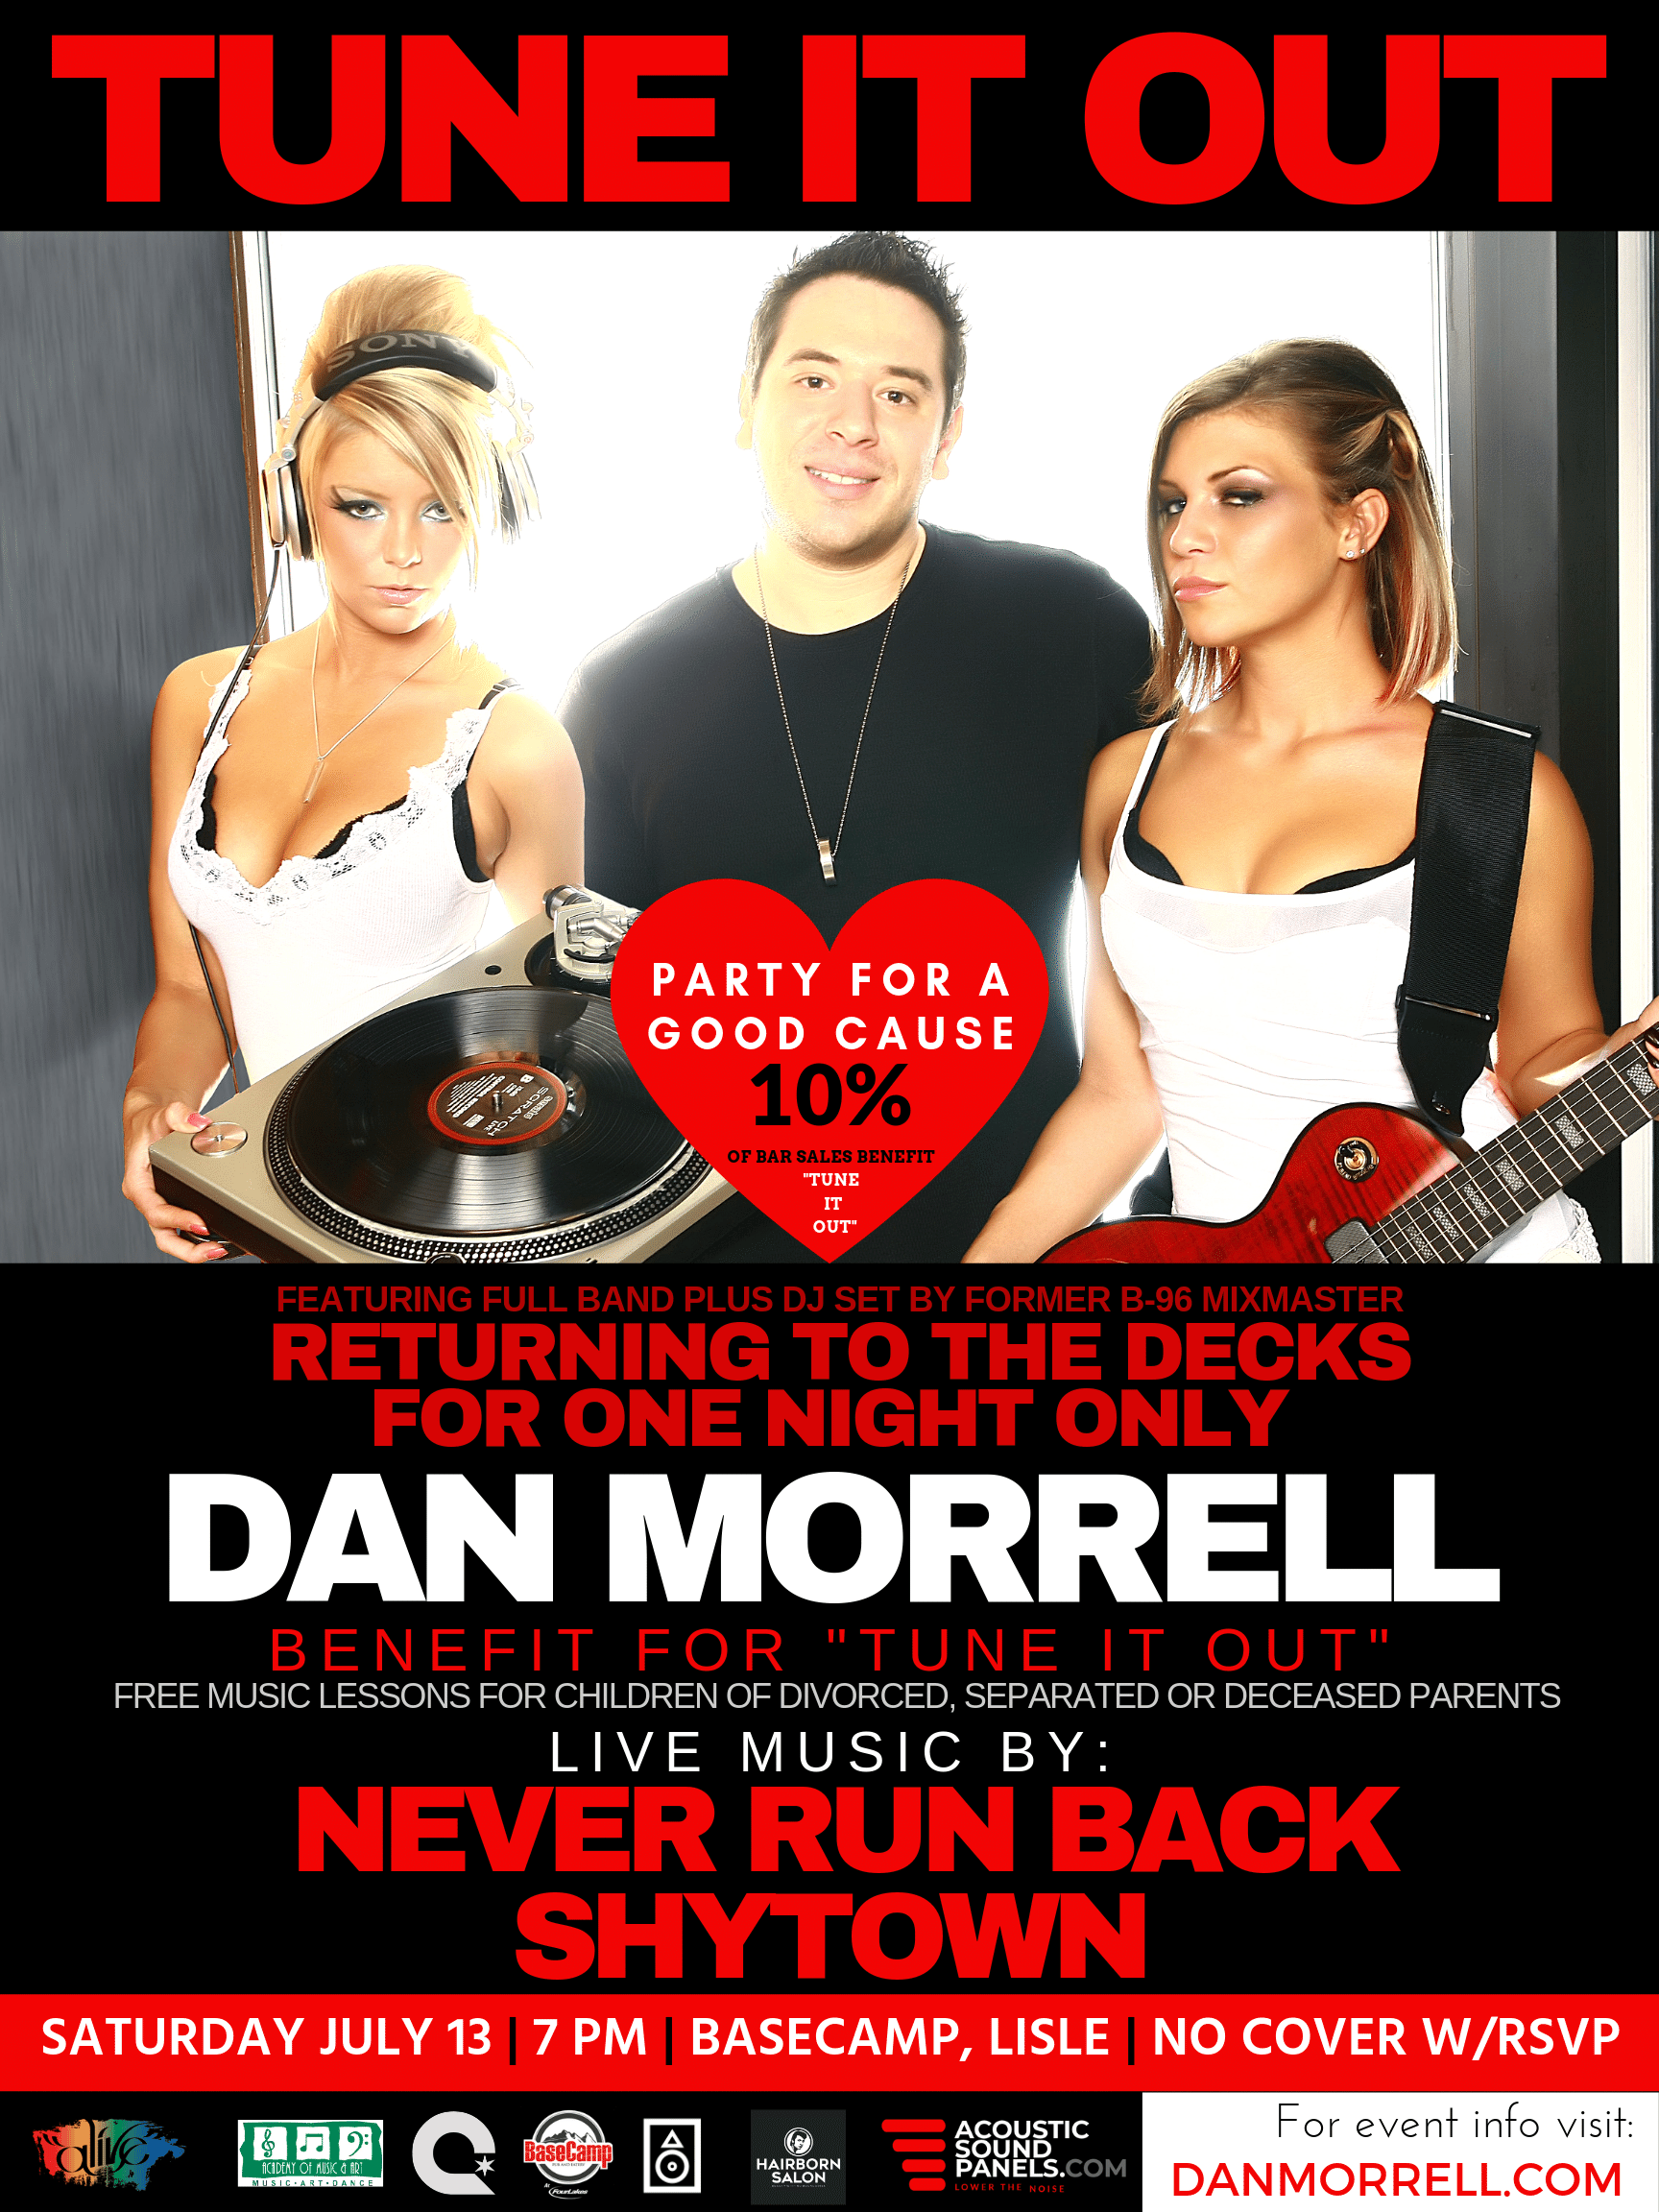 Tune It Out Feat Dan Morrell at Basecamp Pub In Lisle July 13, 2019